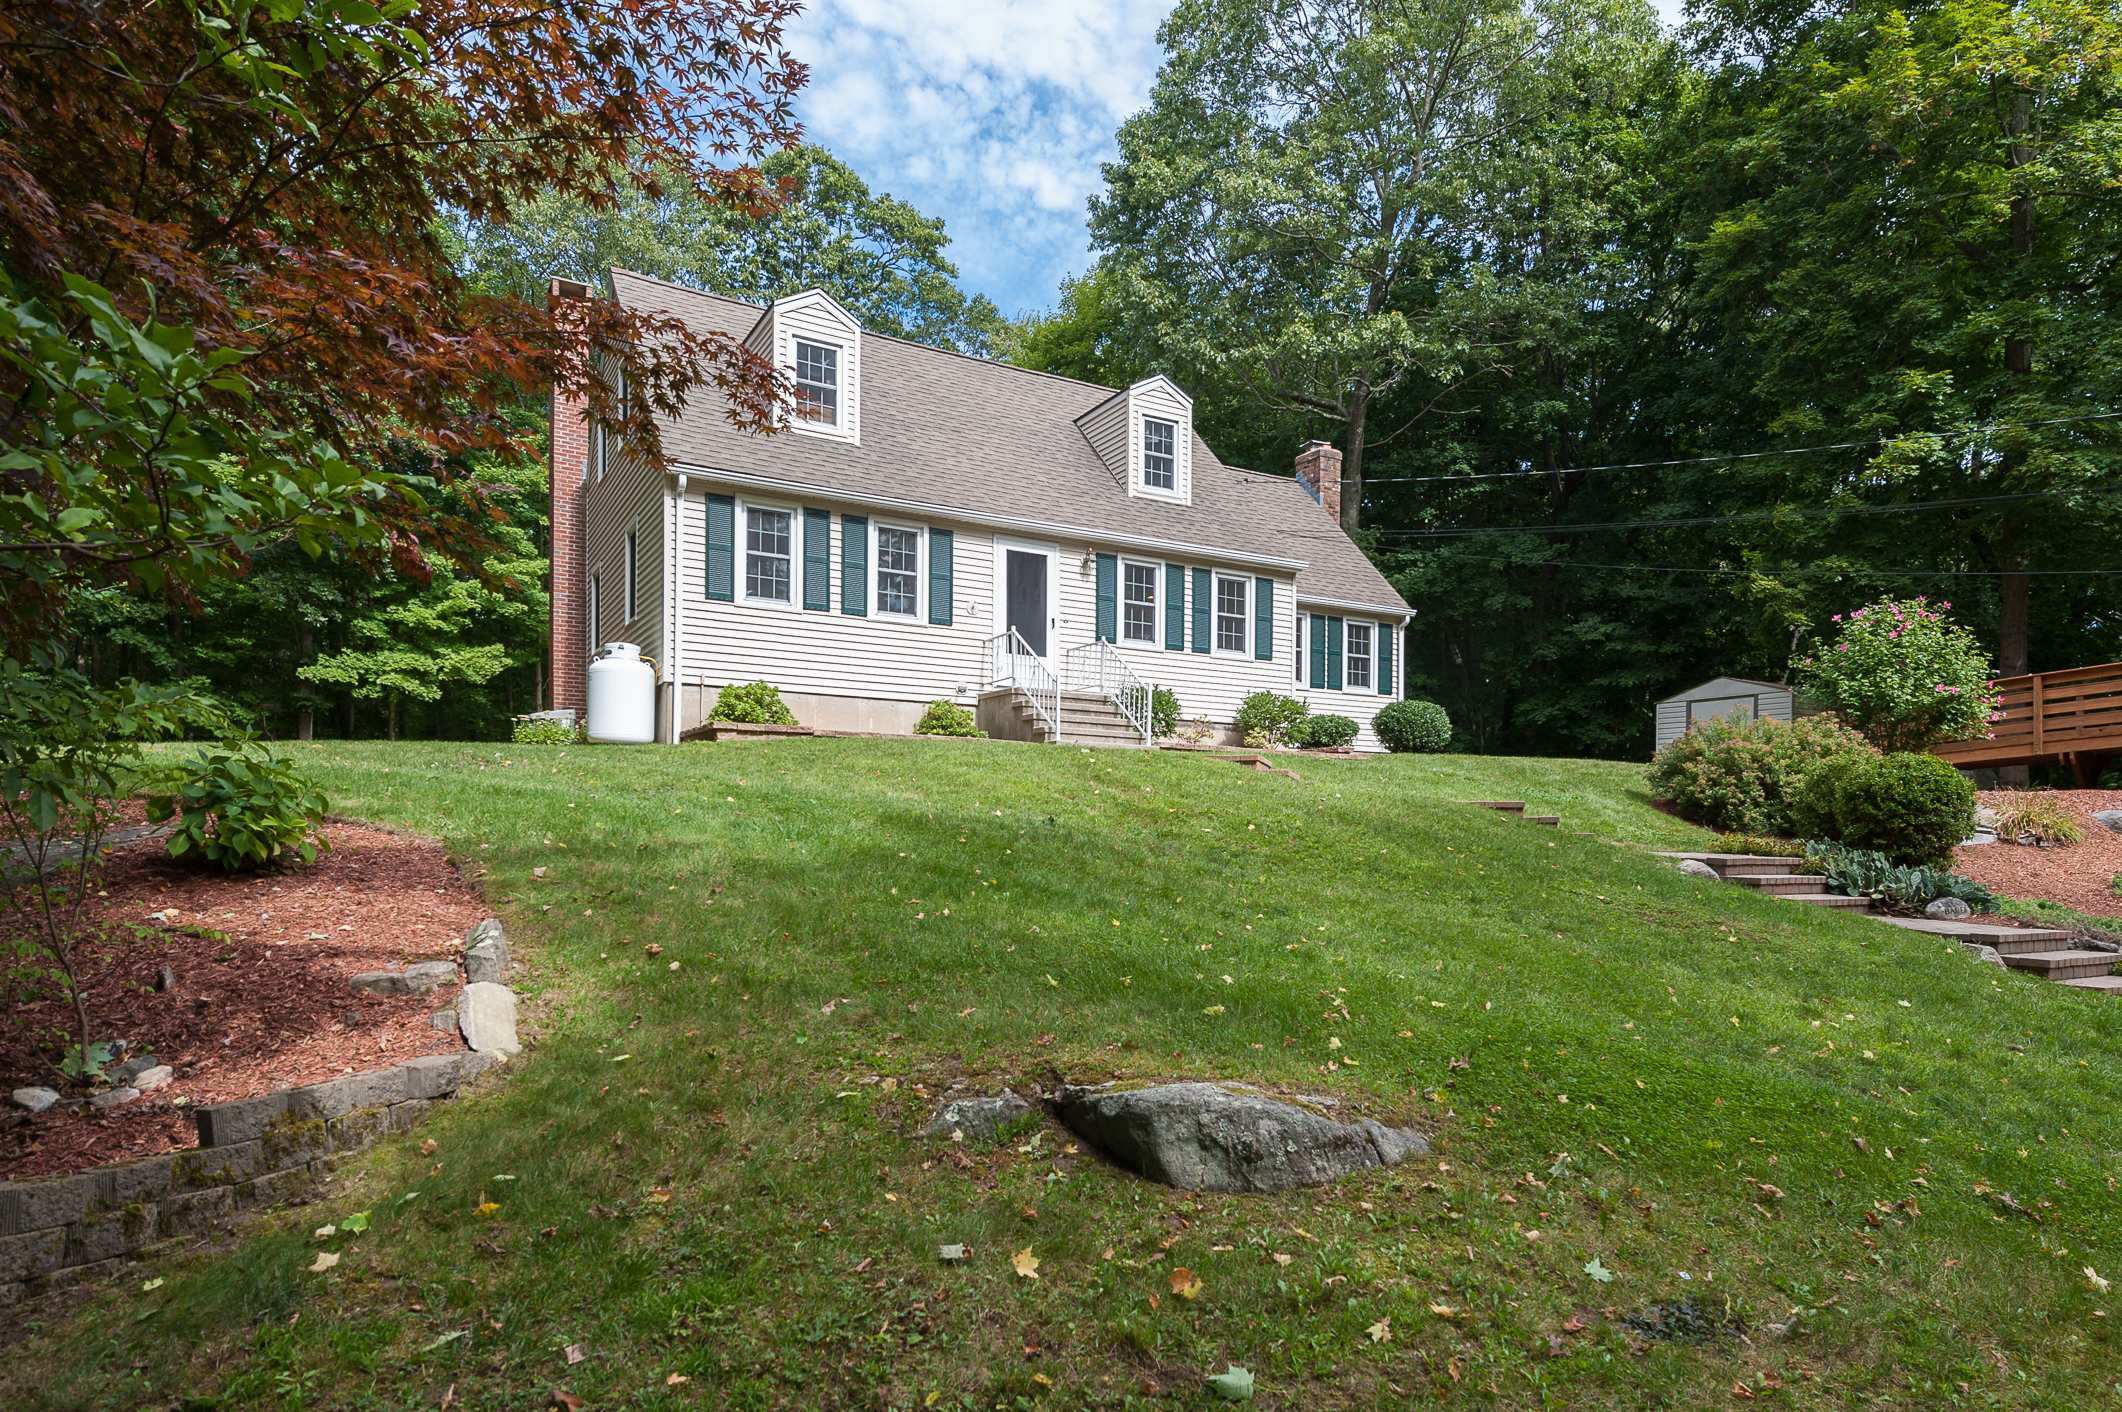 Single Family Home for Sale at 61 Essex Street Deep River, Connecticut 06417 United States